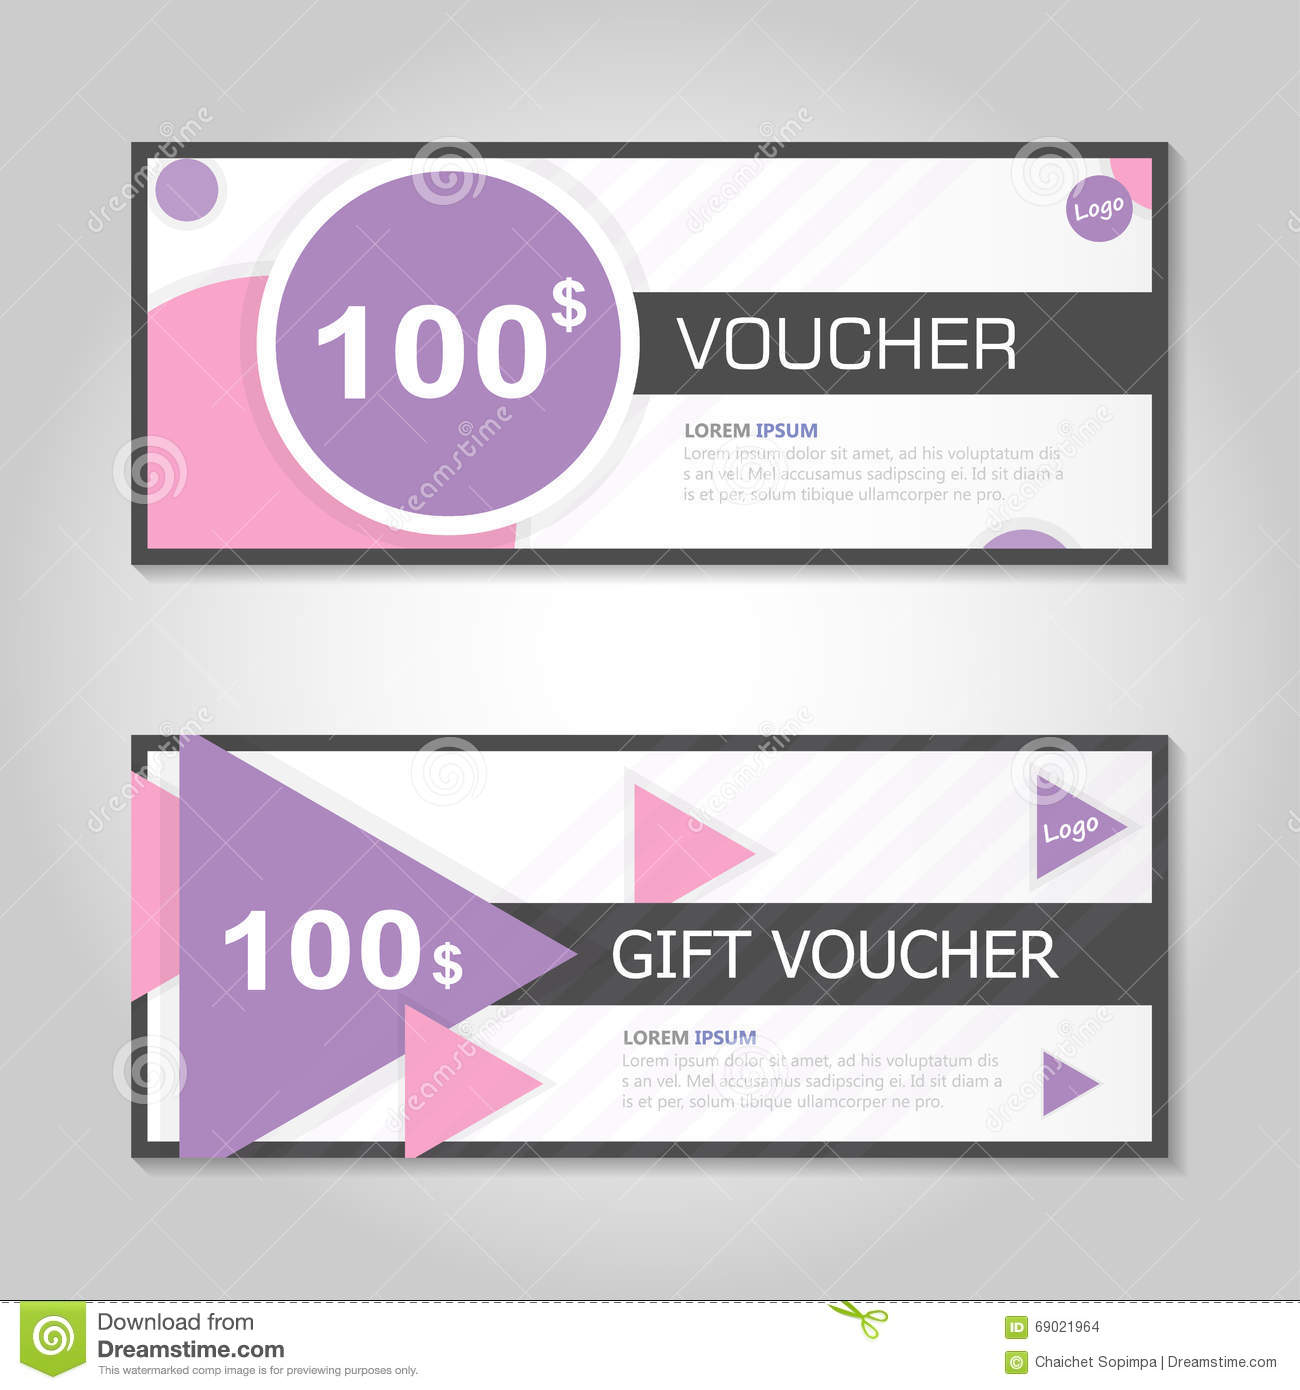 Gold gift voucher template coupon design gift certificate stock remium elegance pink and gold gift voucher template layout design set certificate discount coupon pattern xflitez Image collections